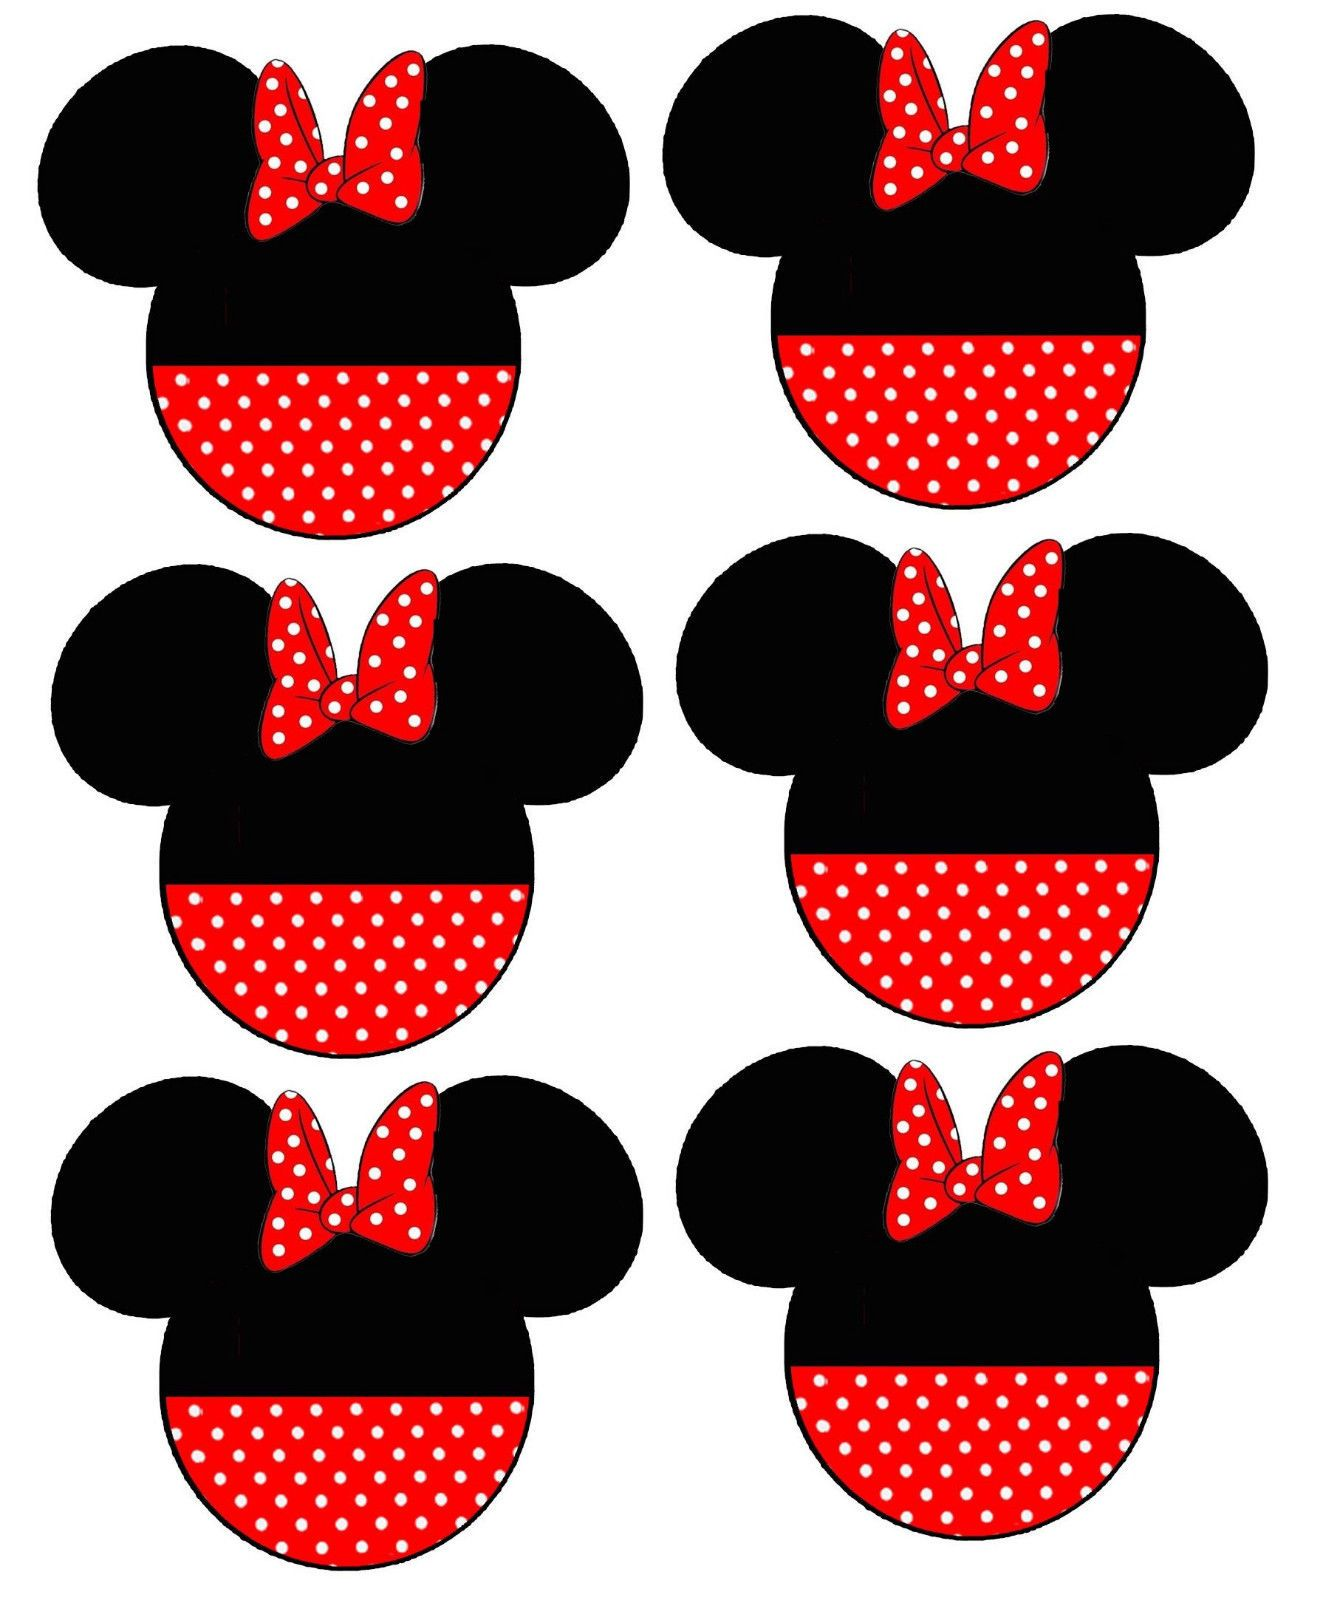 *****DISNEY MINNIE MOUSE BOW  ****FABRIC//T-SHIRT IRON ON TRANSFER